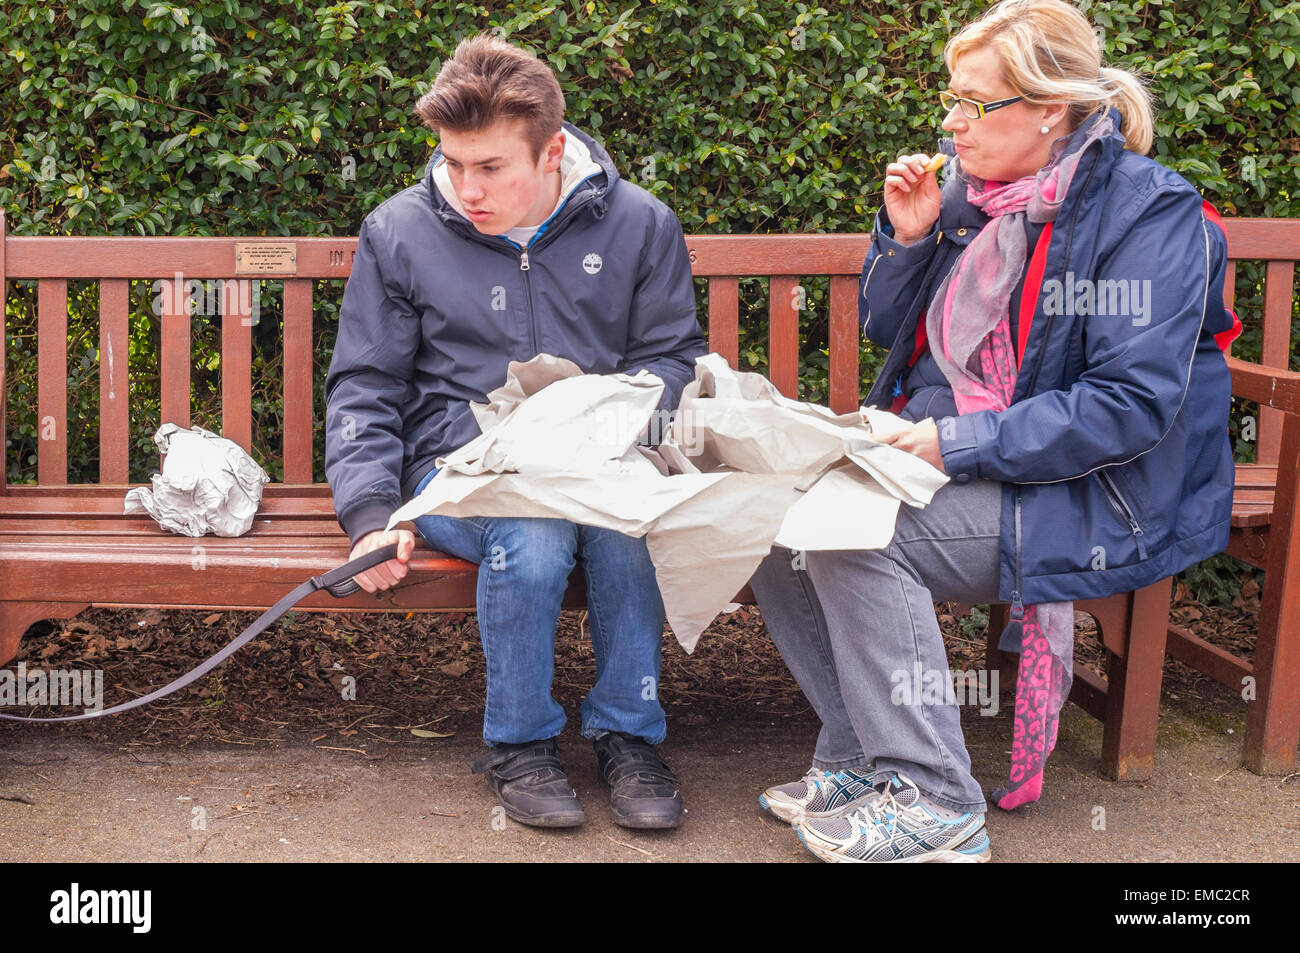 A mother and son eating fish & chips on a park bench in the Uk - Stock Image